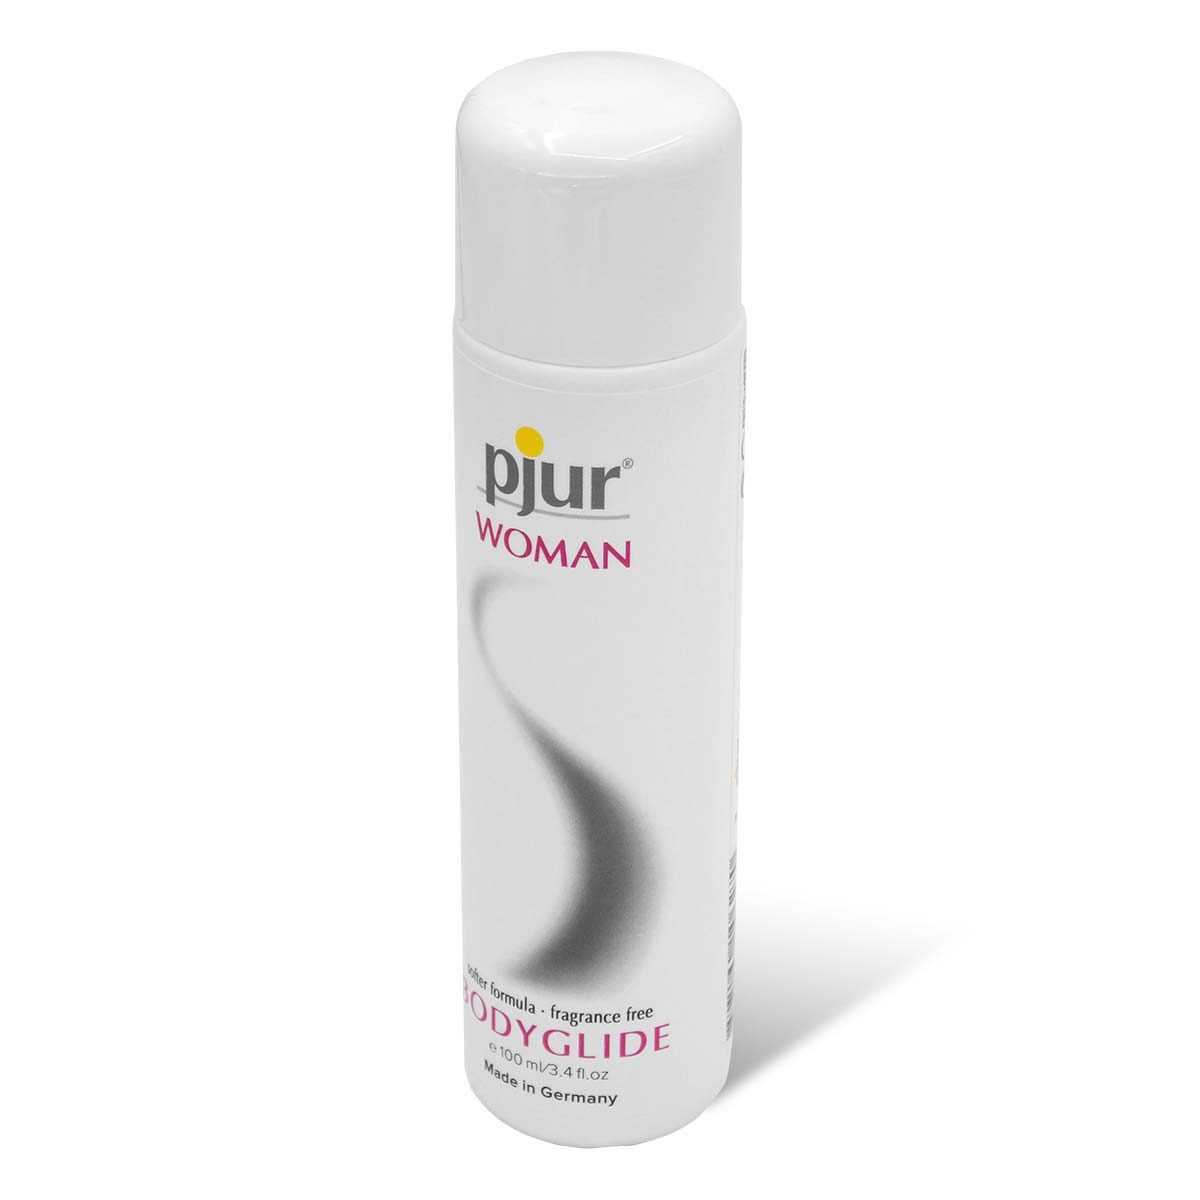 Pjur Woman 100ml Silicone Based Lubricant Condom Sampson Store Durex Play Silky